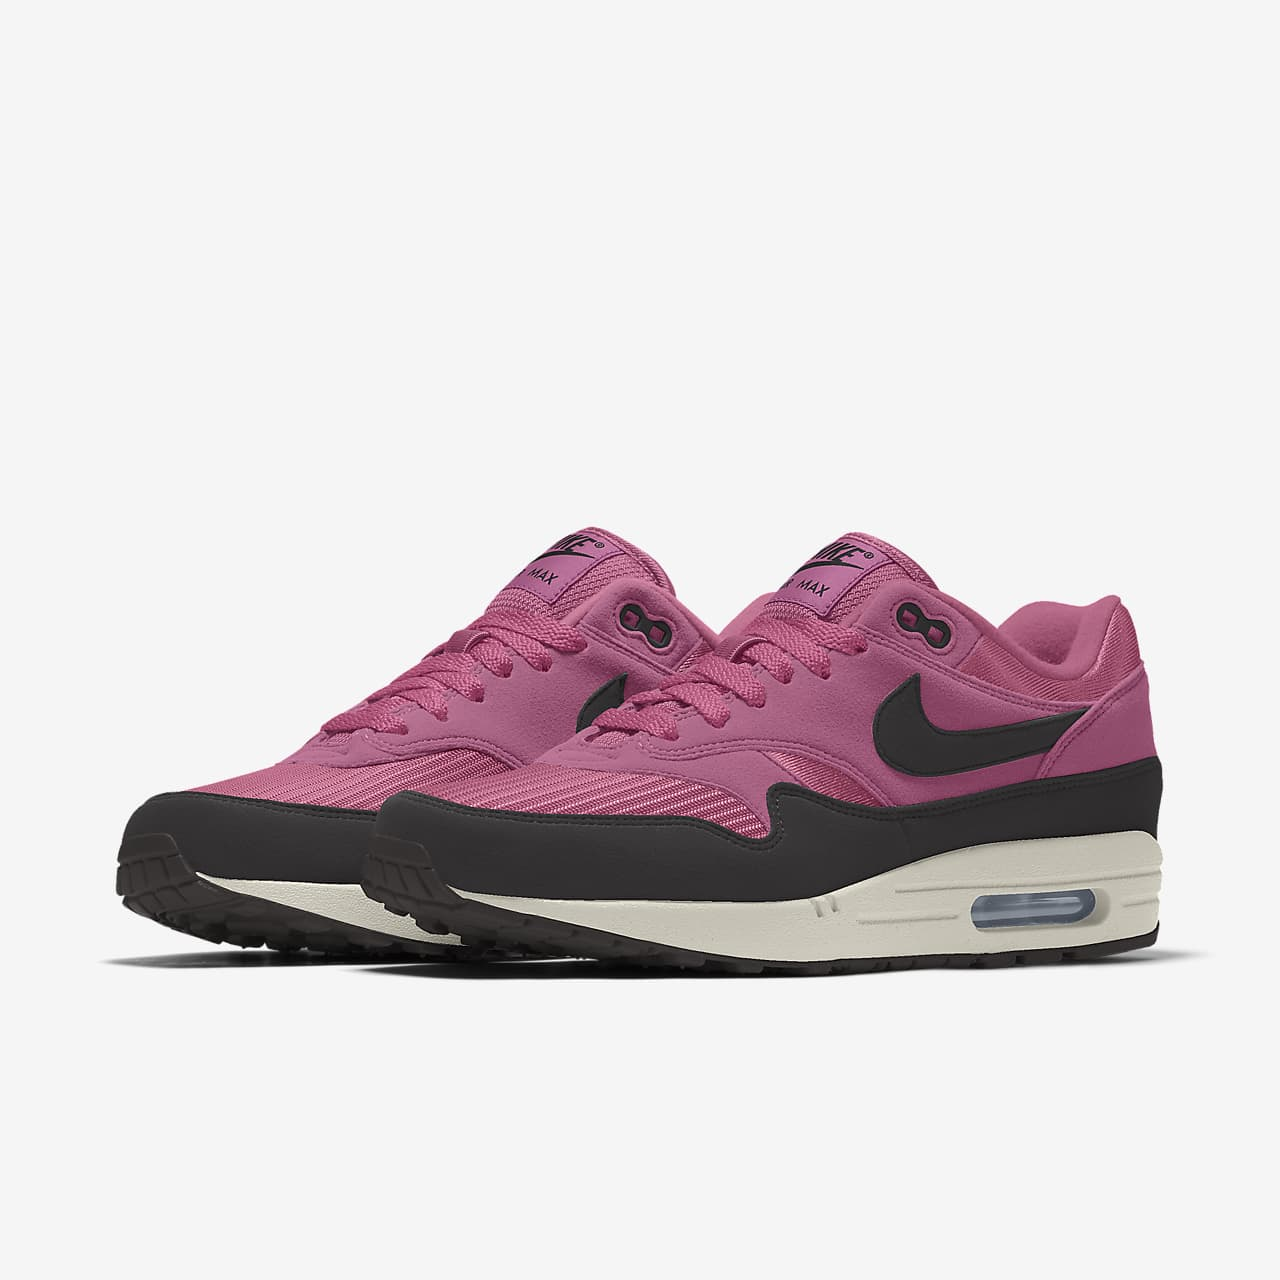 Chaussure personnalisable Nike Air Max 1 By You pour Femme